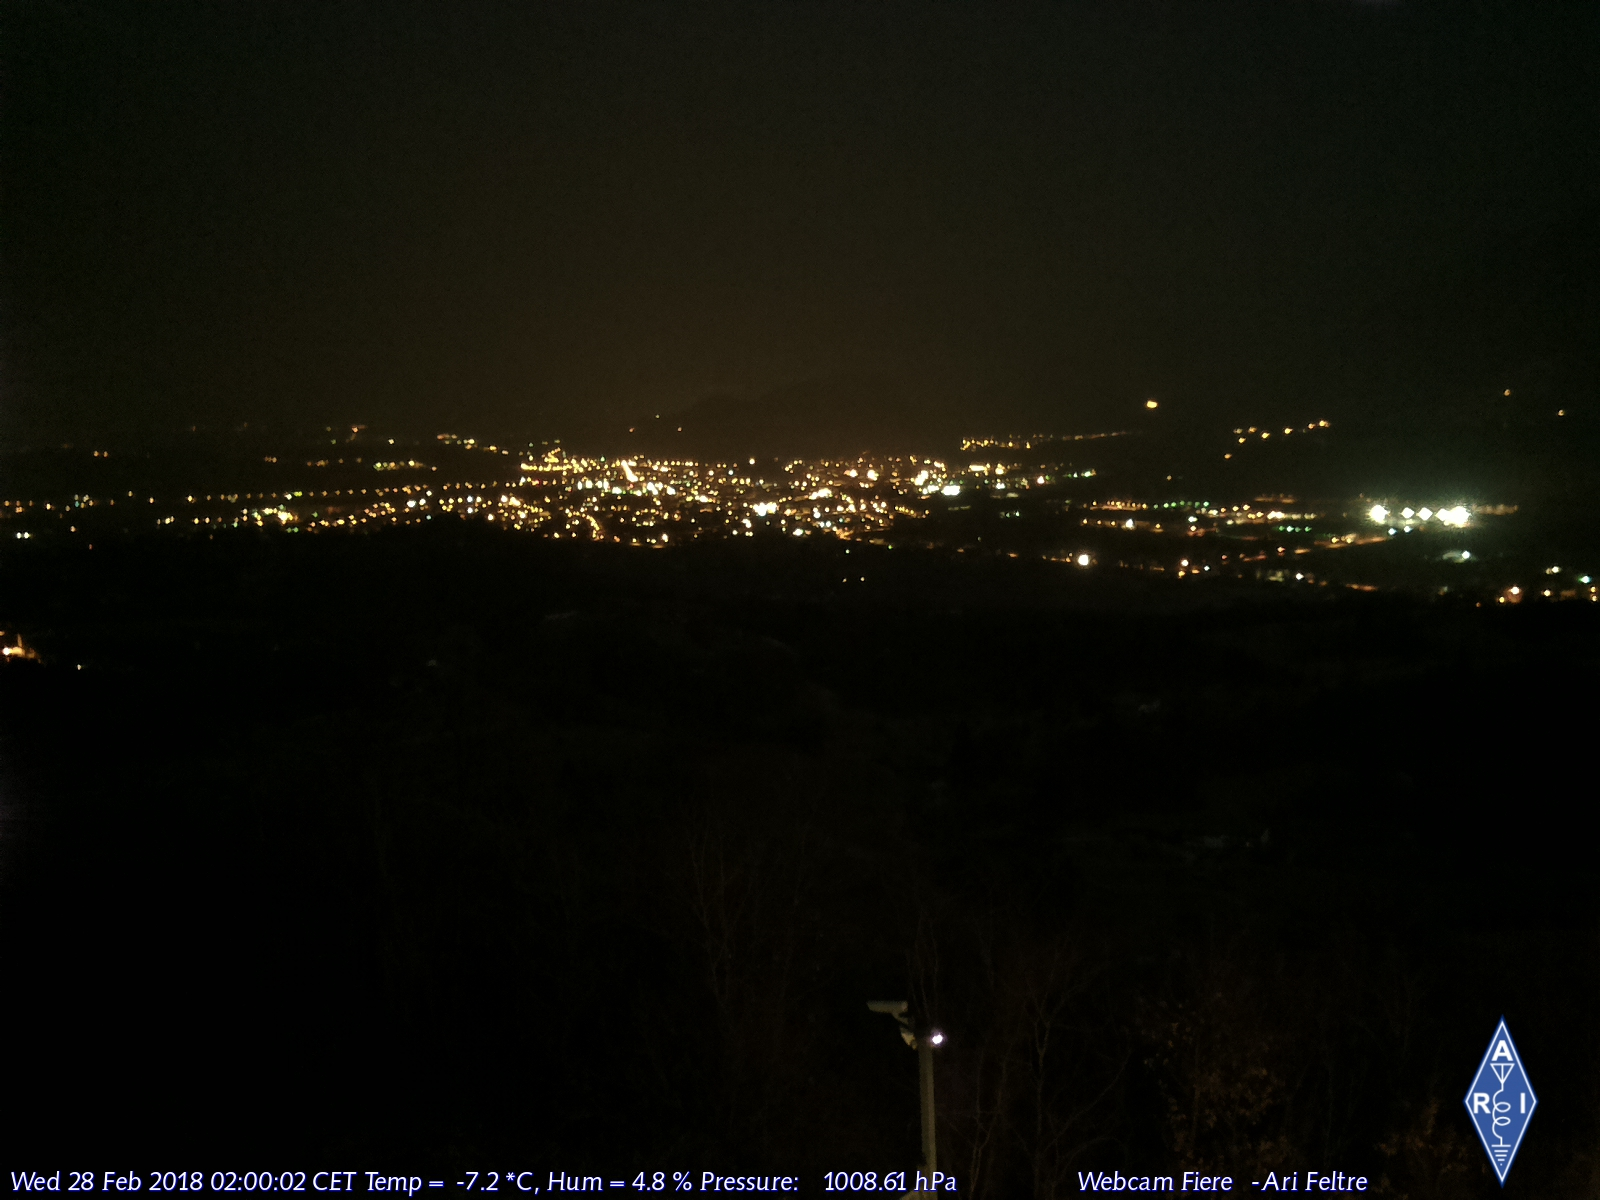 webcam feltre n. 47685